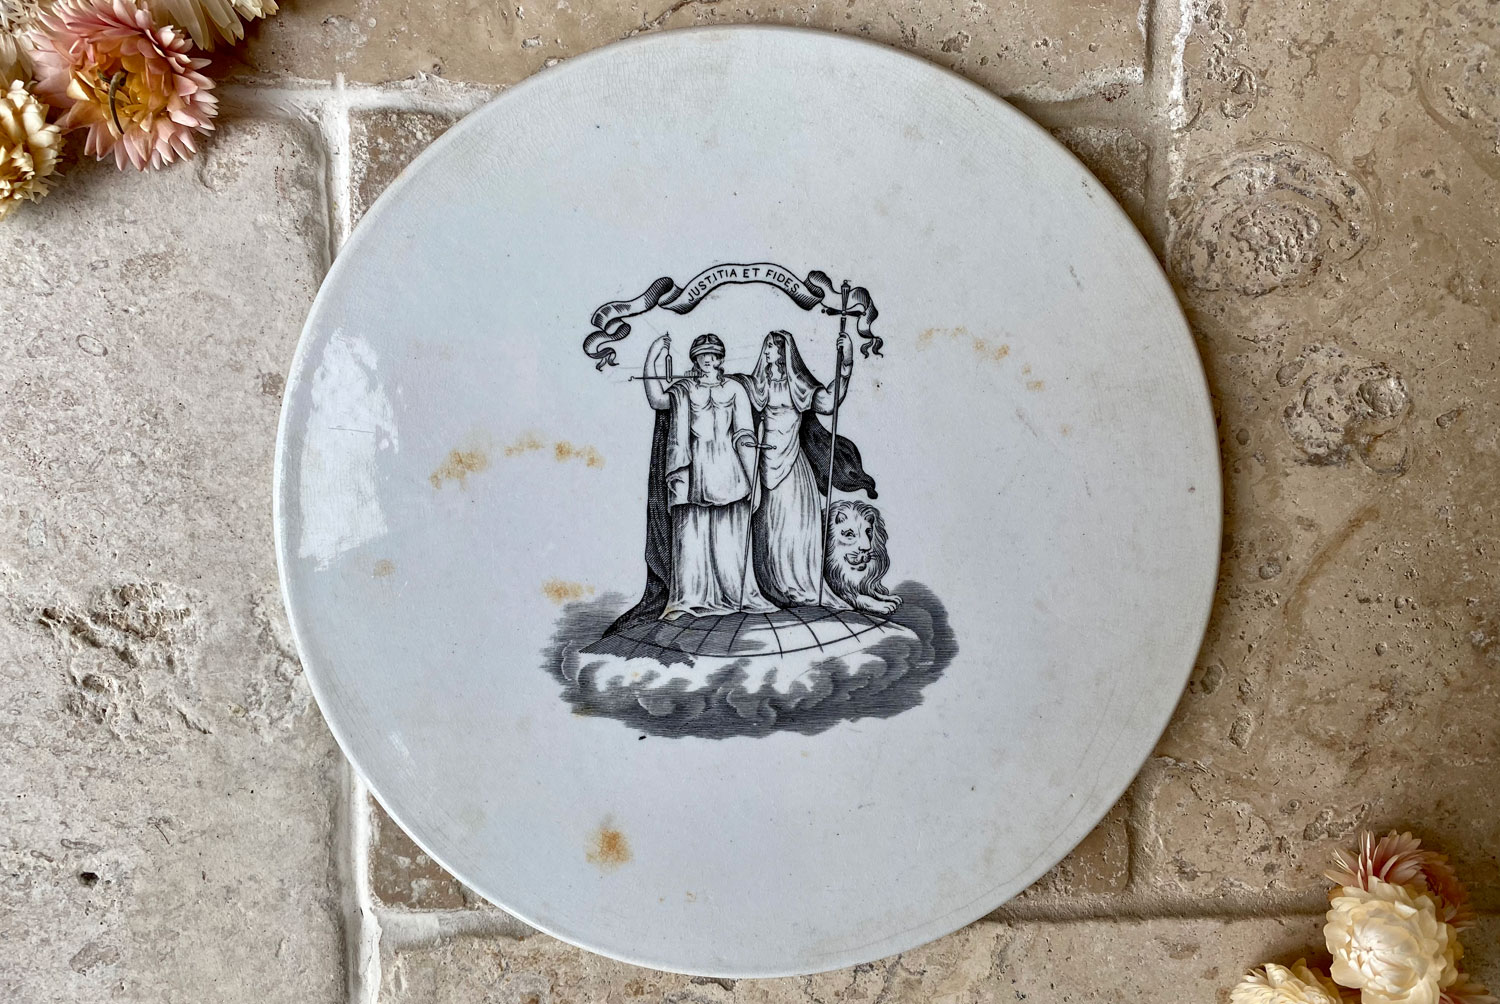 antique edwardian victorian white ironstone grocers shop advertising scale plate justitia fides black transfer print logo